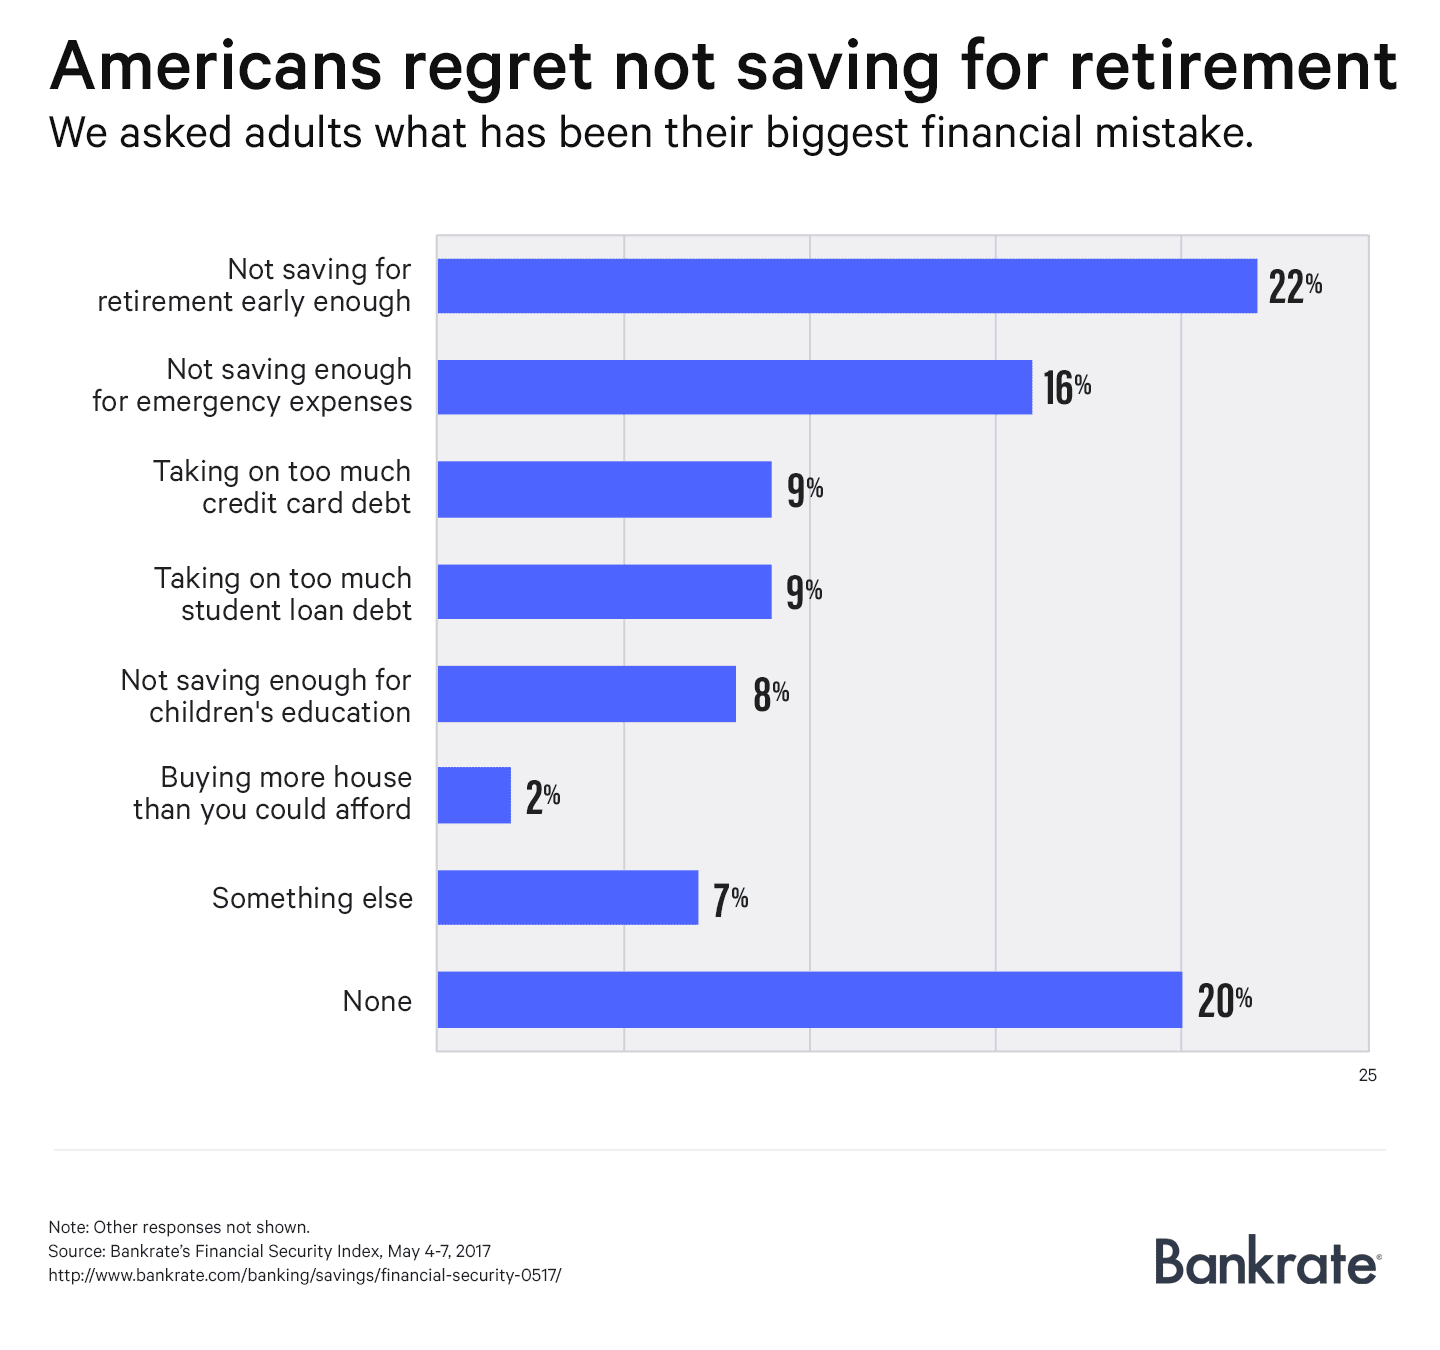 financial regrets chart1 DICKLER 052217 EC